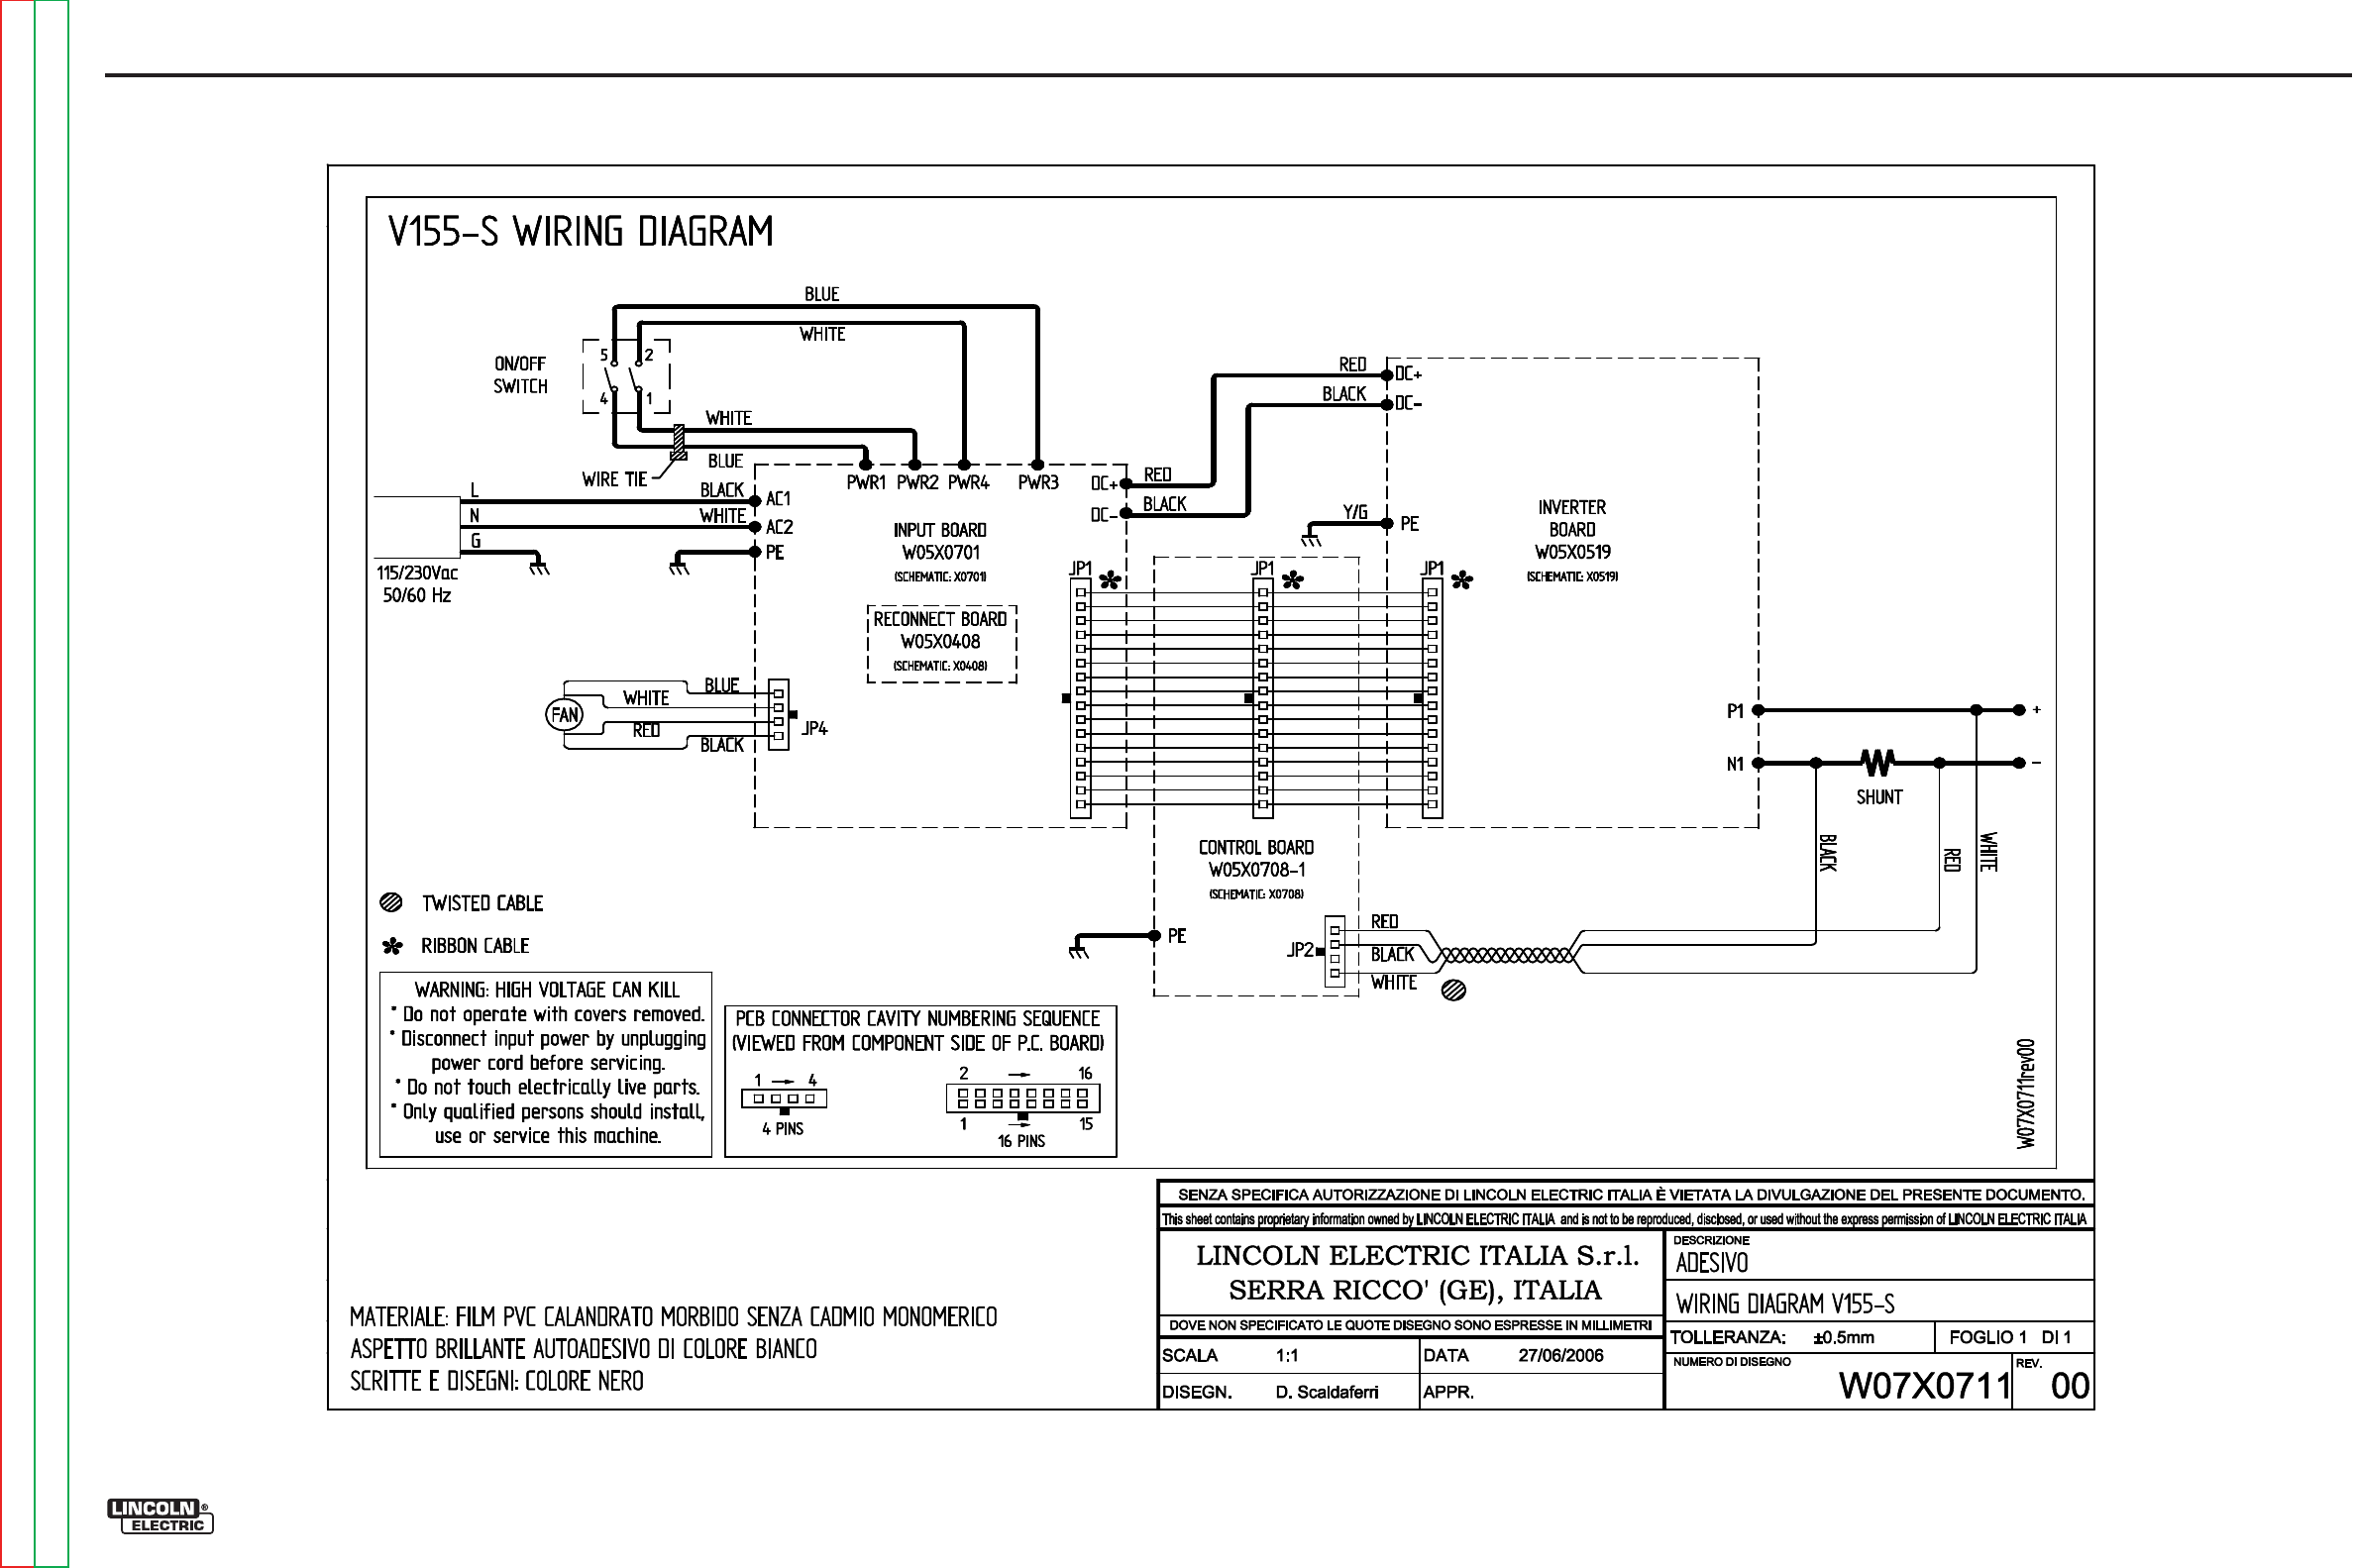 lincoln electric wiring diagram lincoln printable wiring page 68 of lincoln electric portable generator v155 s user guide source · lincoln 100 welder wire diagram